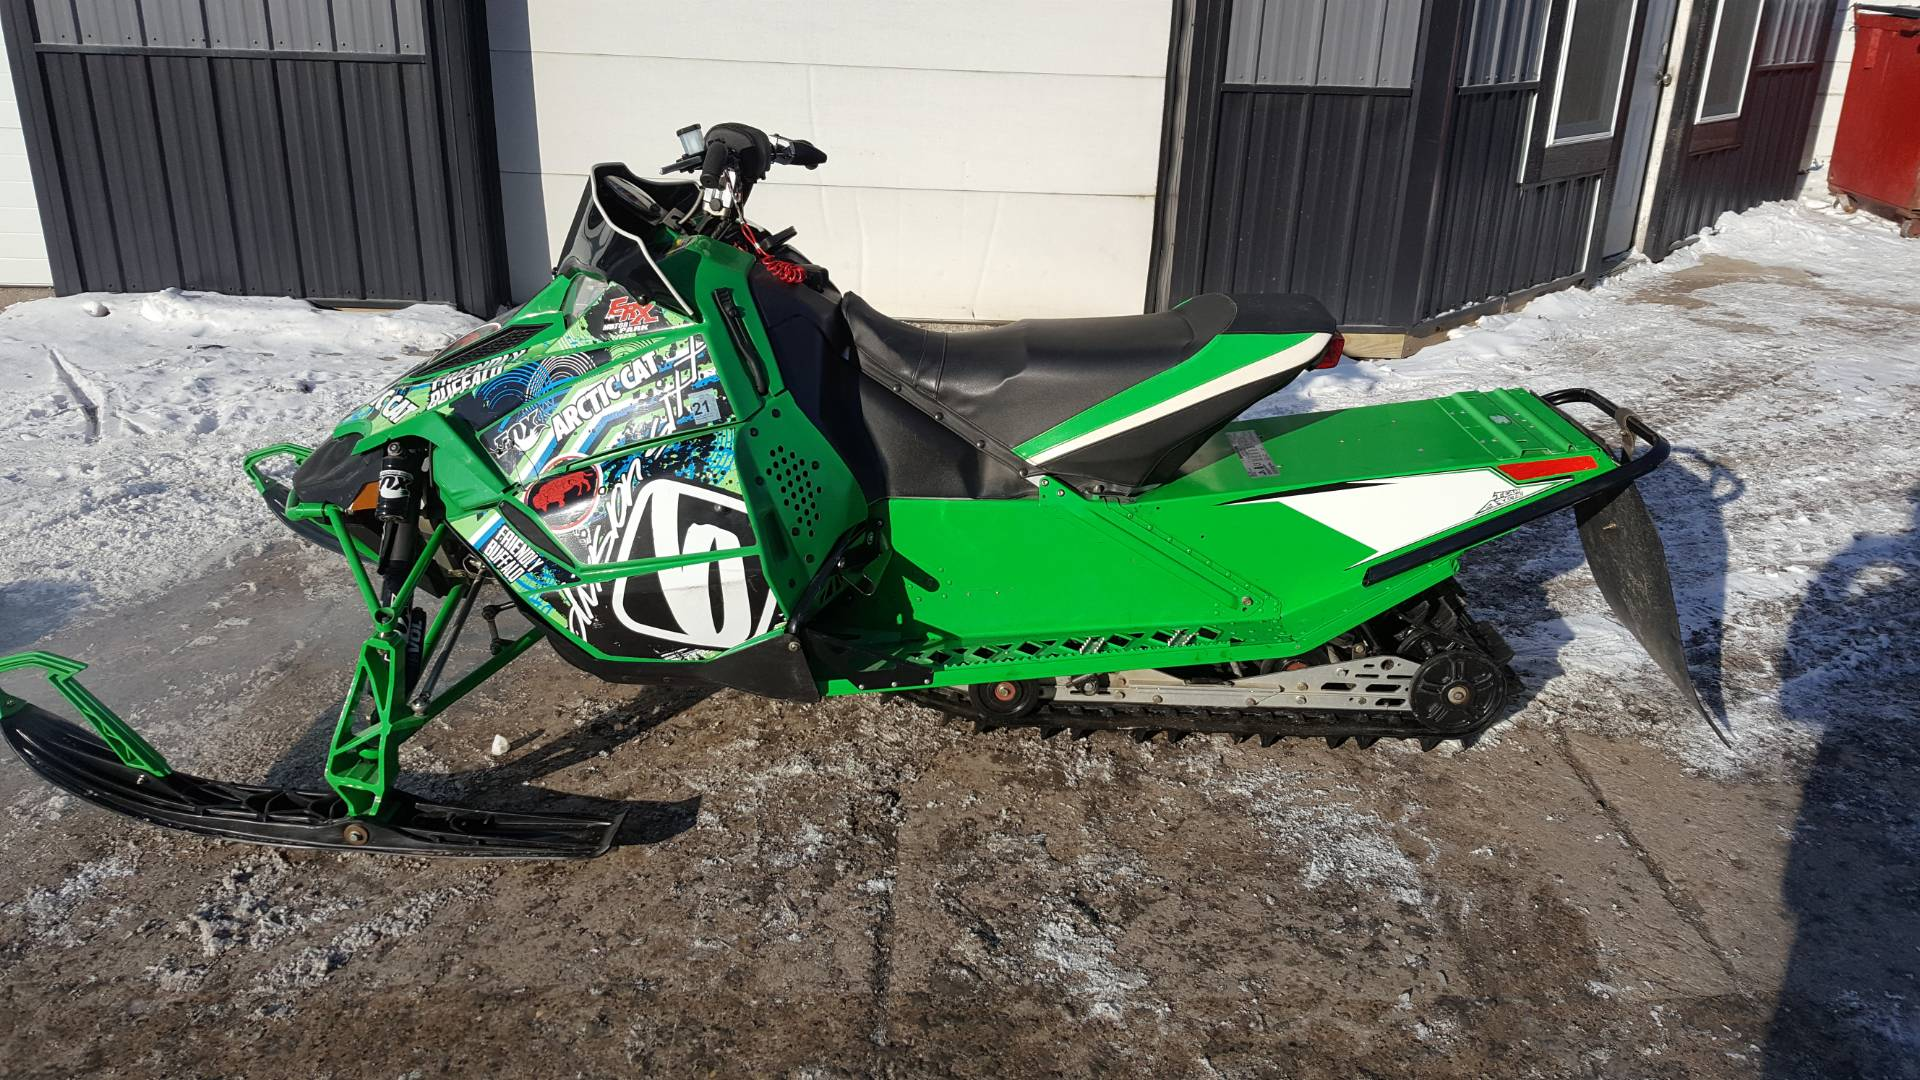 2014 Arctic Cat Sno Pro® 500 in Mazeppa, Minnesota - Photo 1